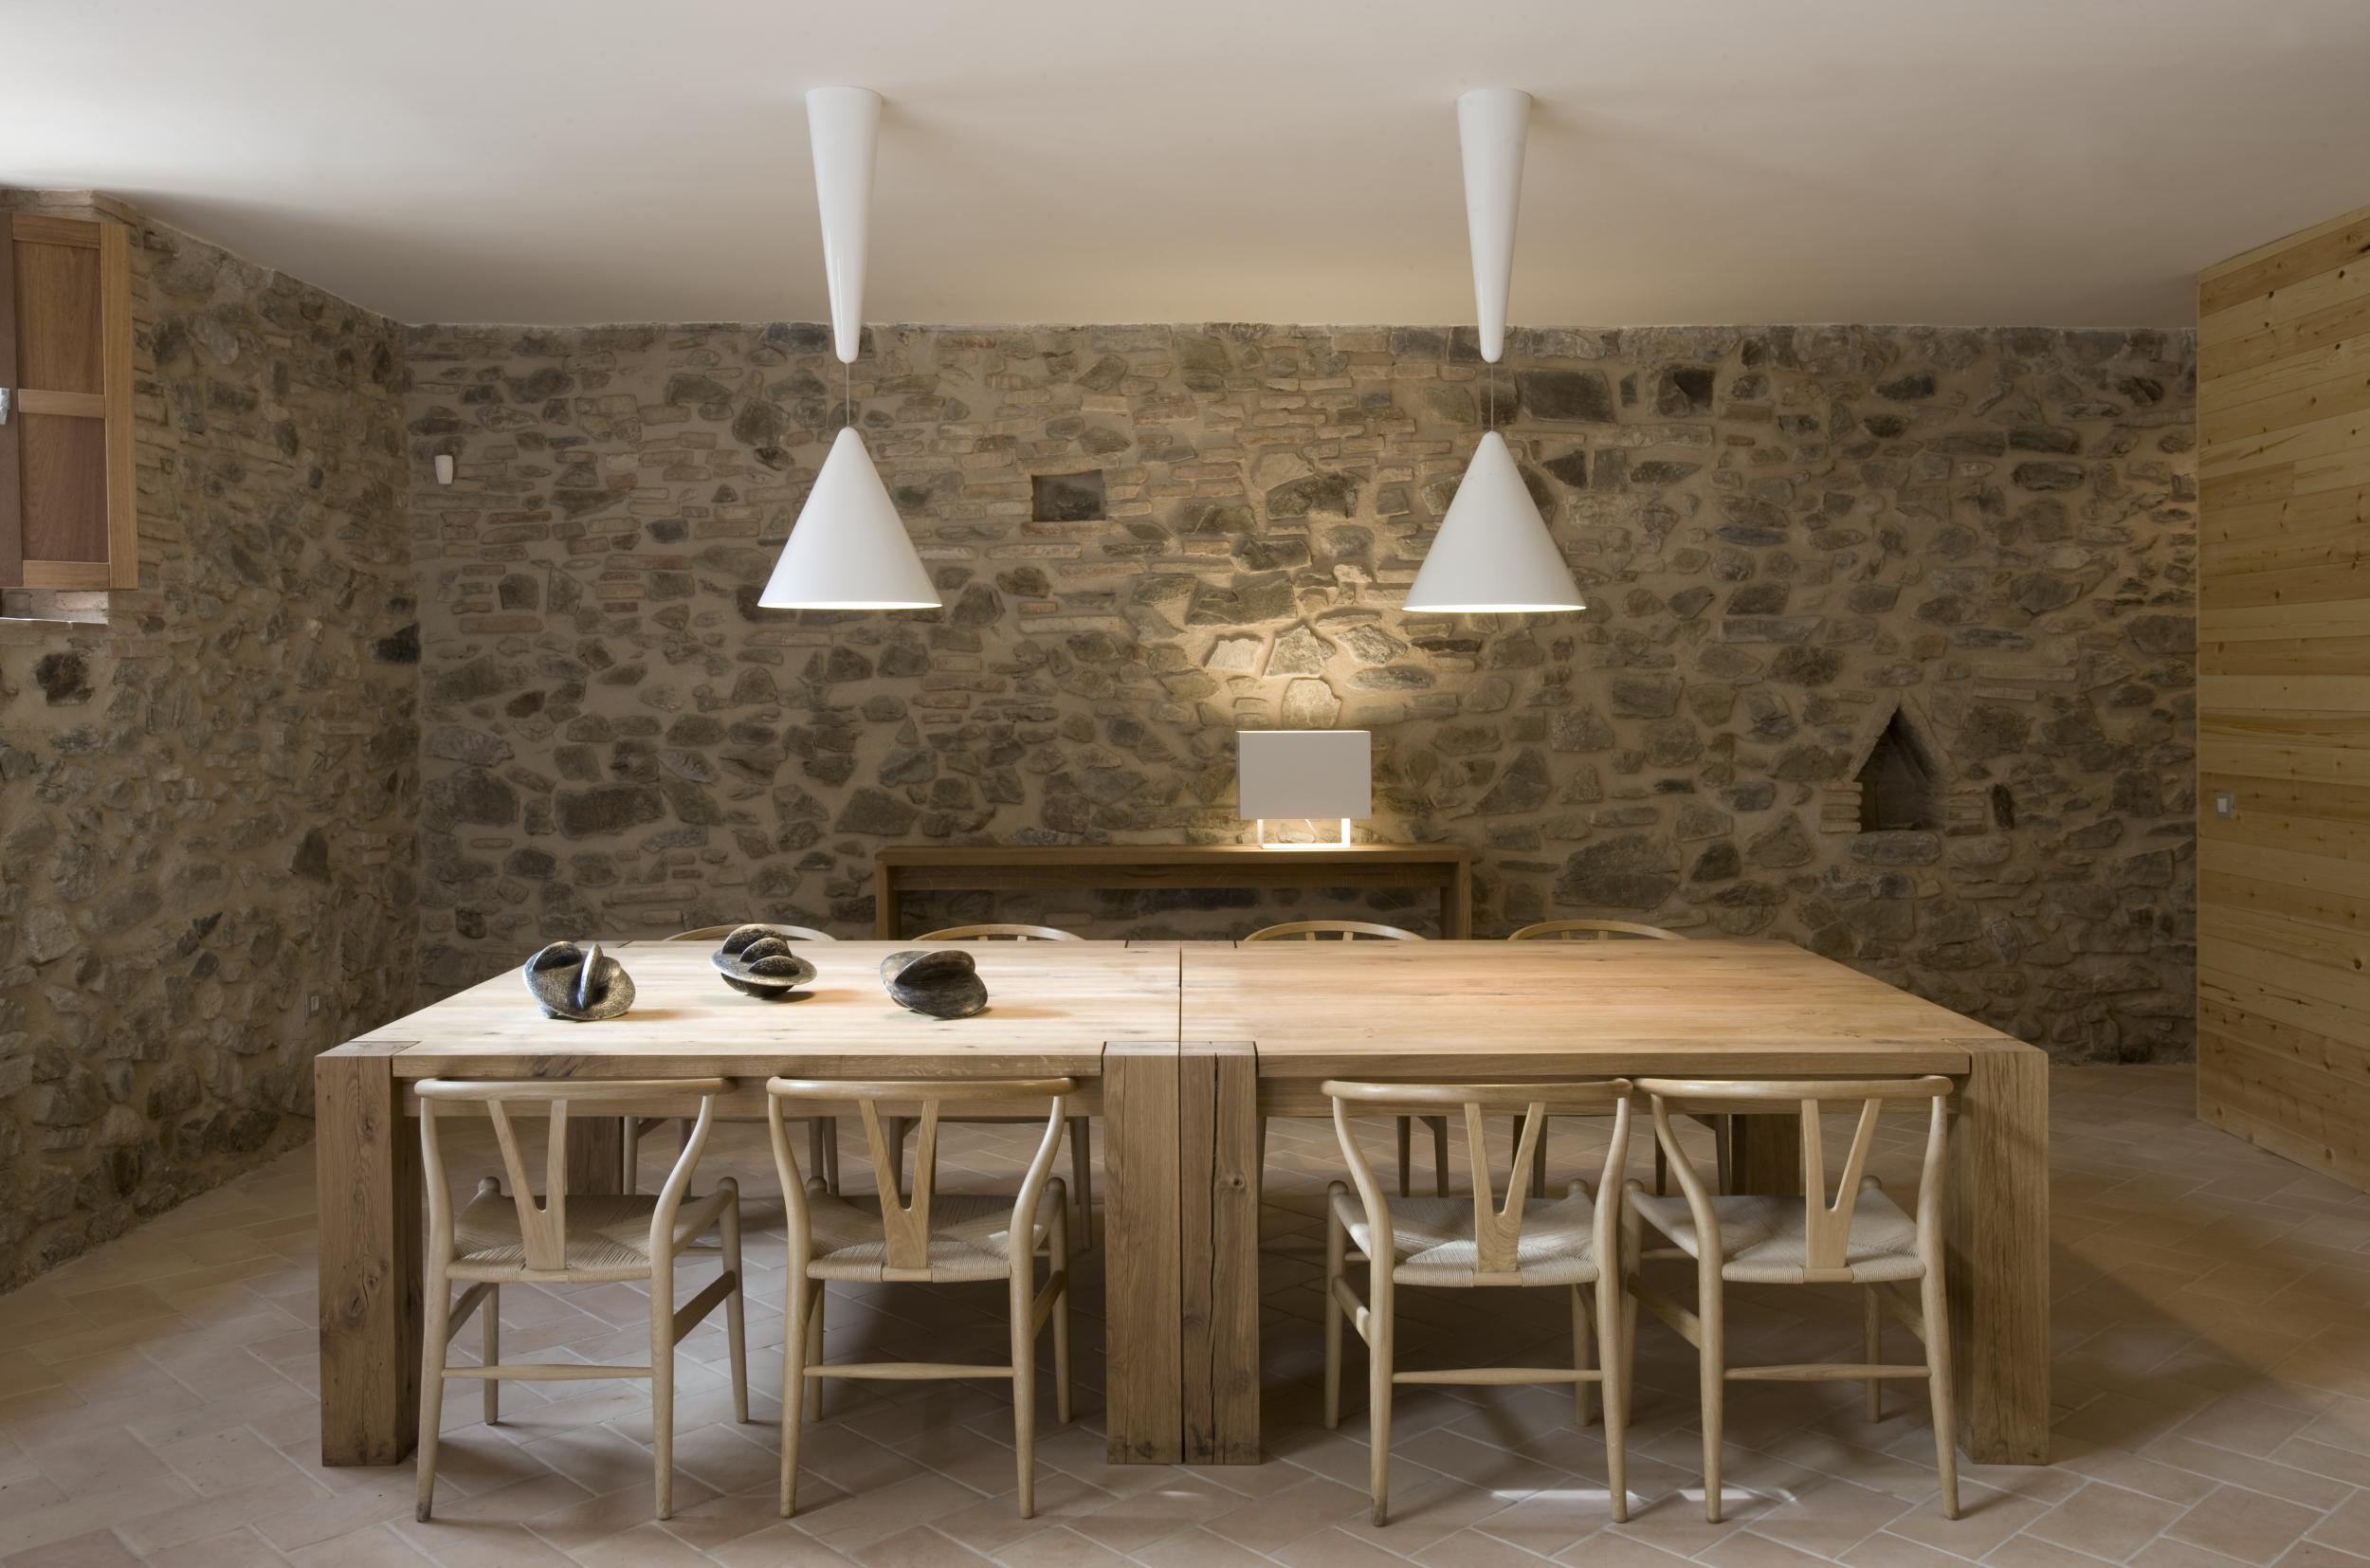 Housing and winery in the priorat region vilablanch for Arquitectura interior